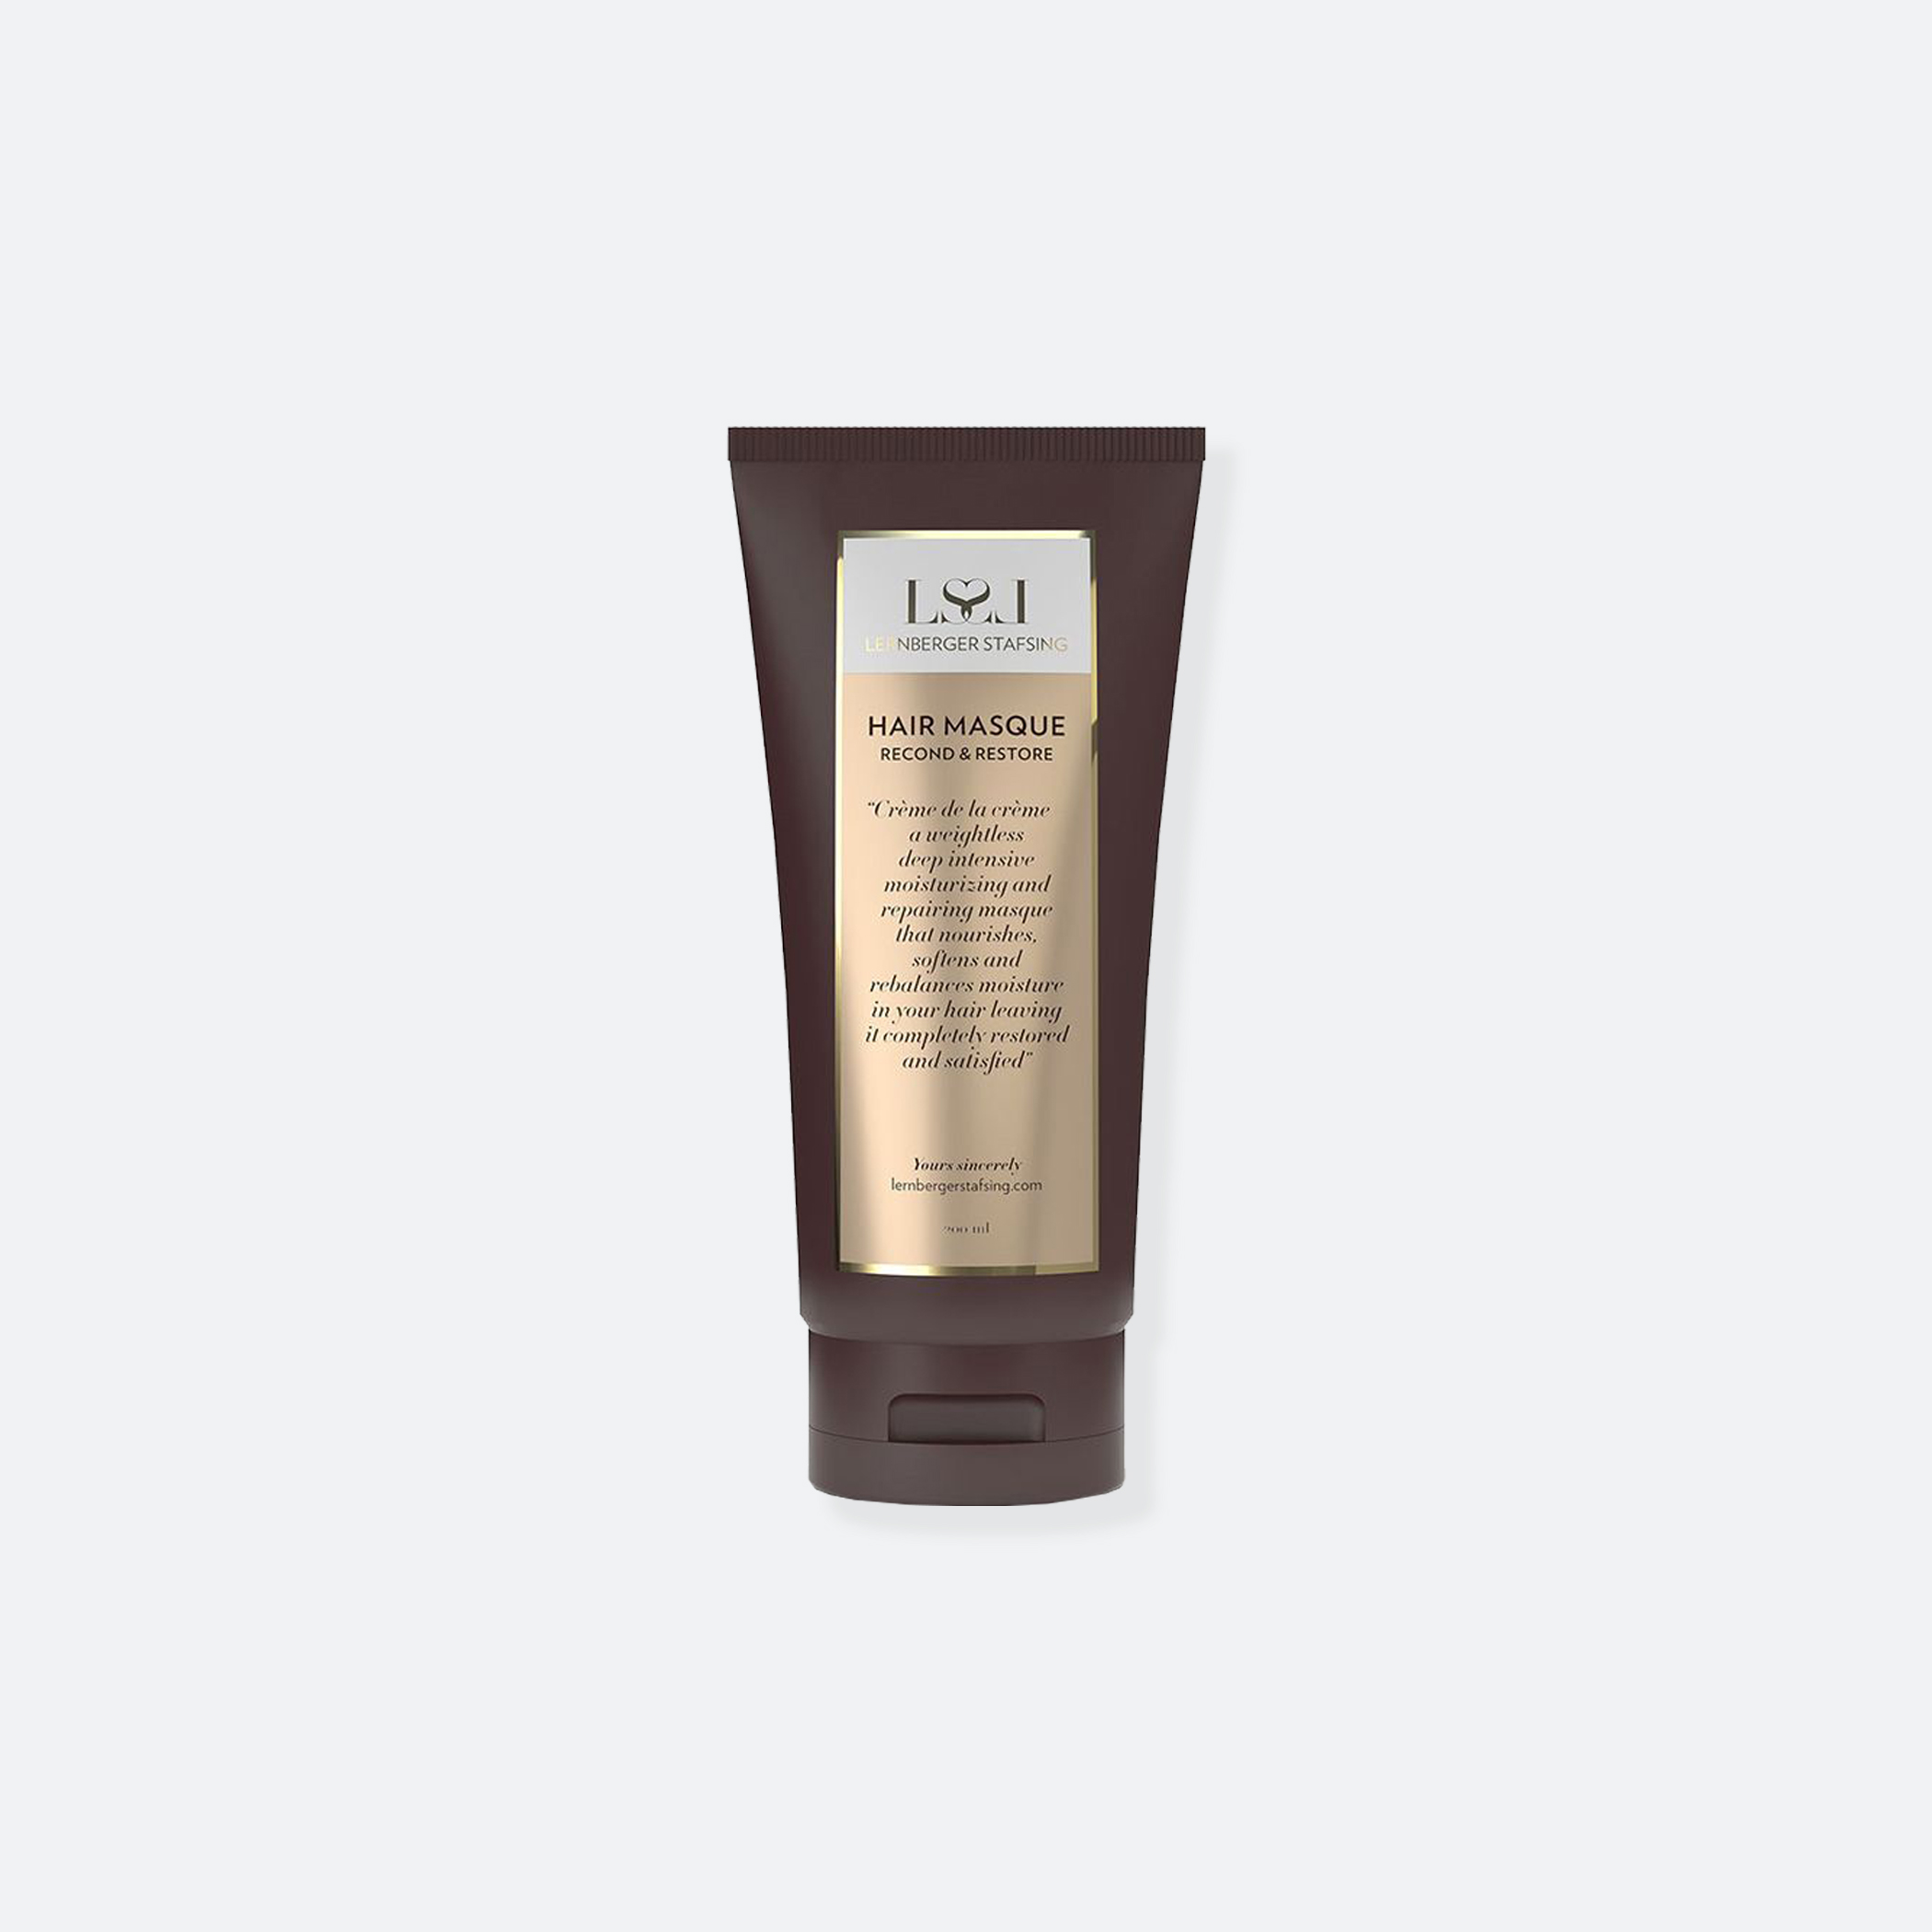 OhMart Lernberger Stafsing Hair Masque 1